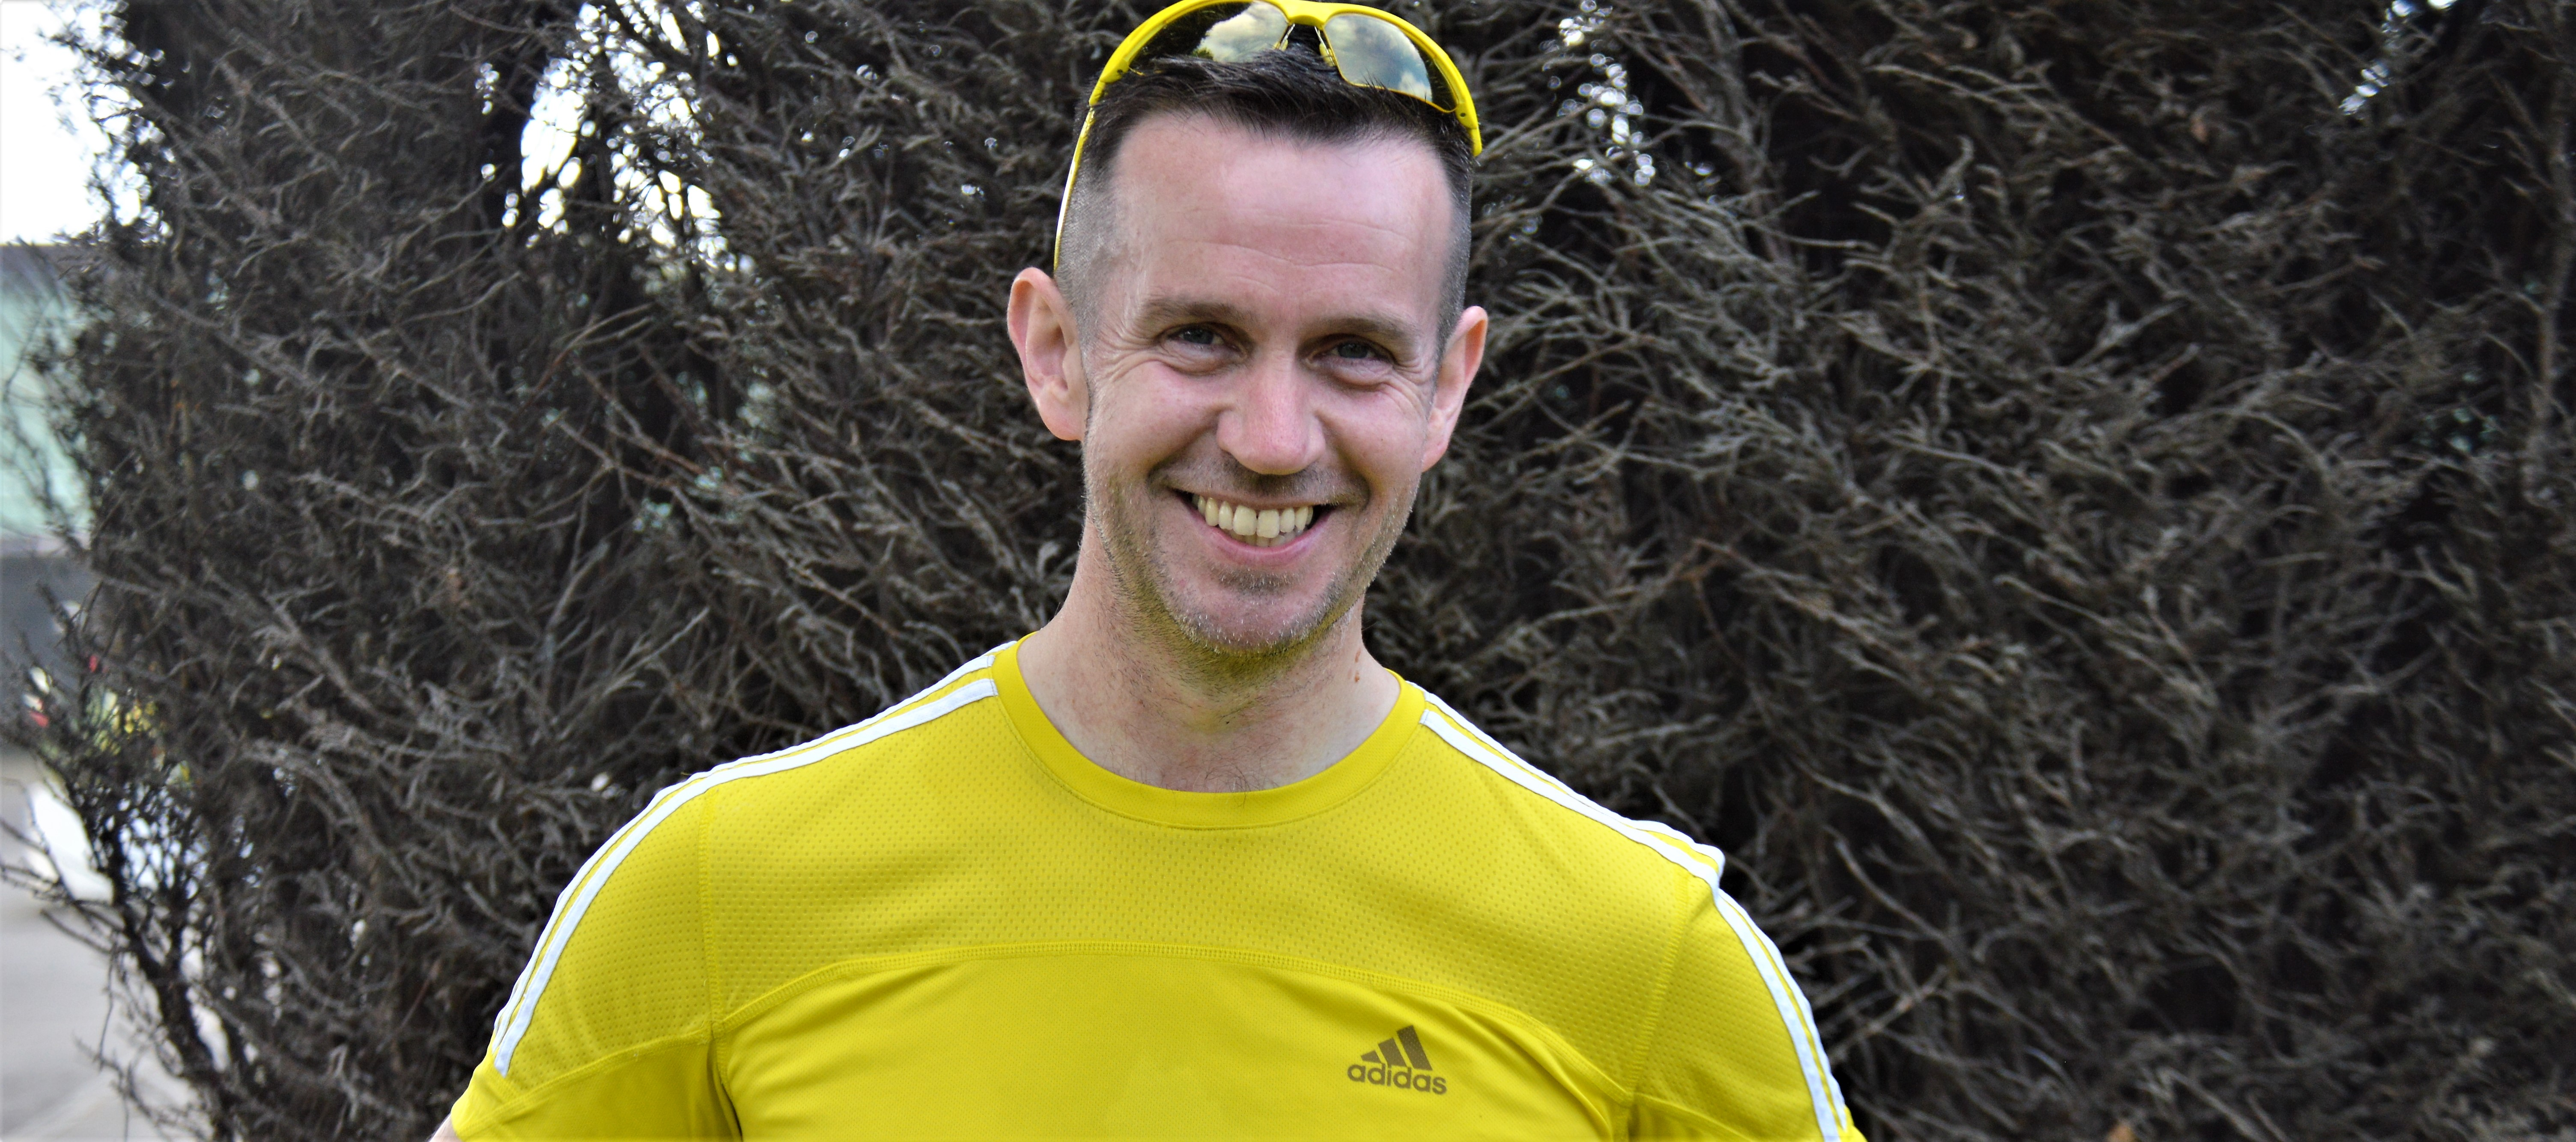 #DreamRunDublin18 – 5 weeks to race day! We catch up with Eamonn O'Reilly as part of a special feature…